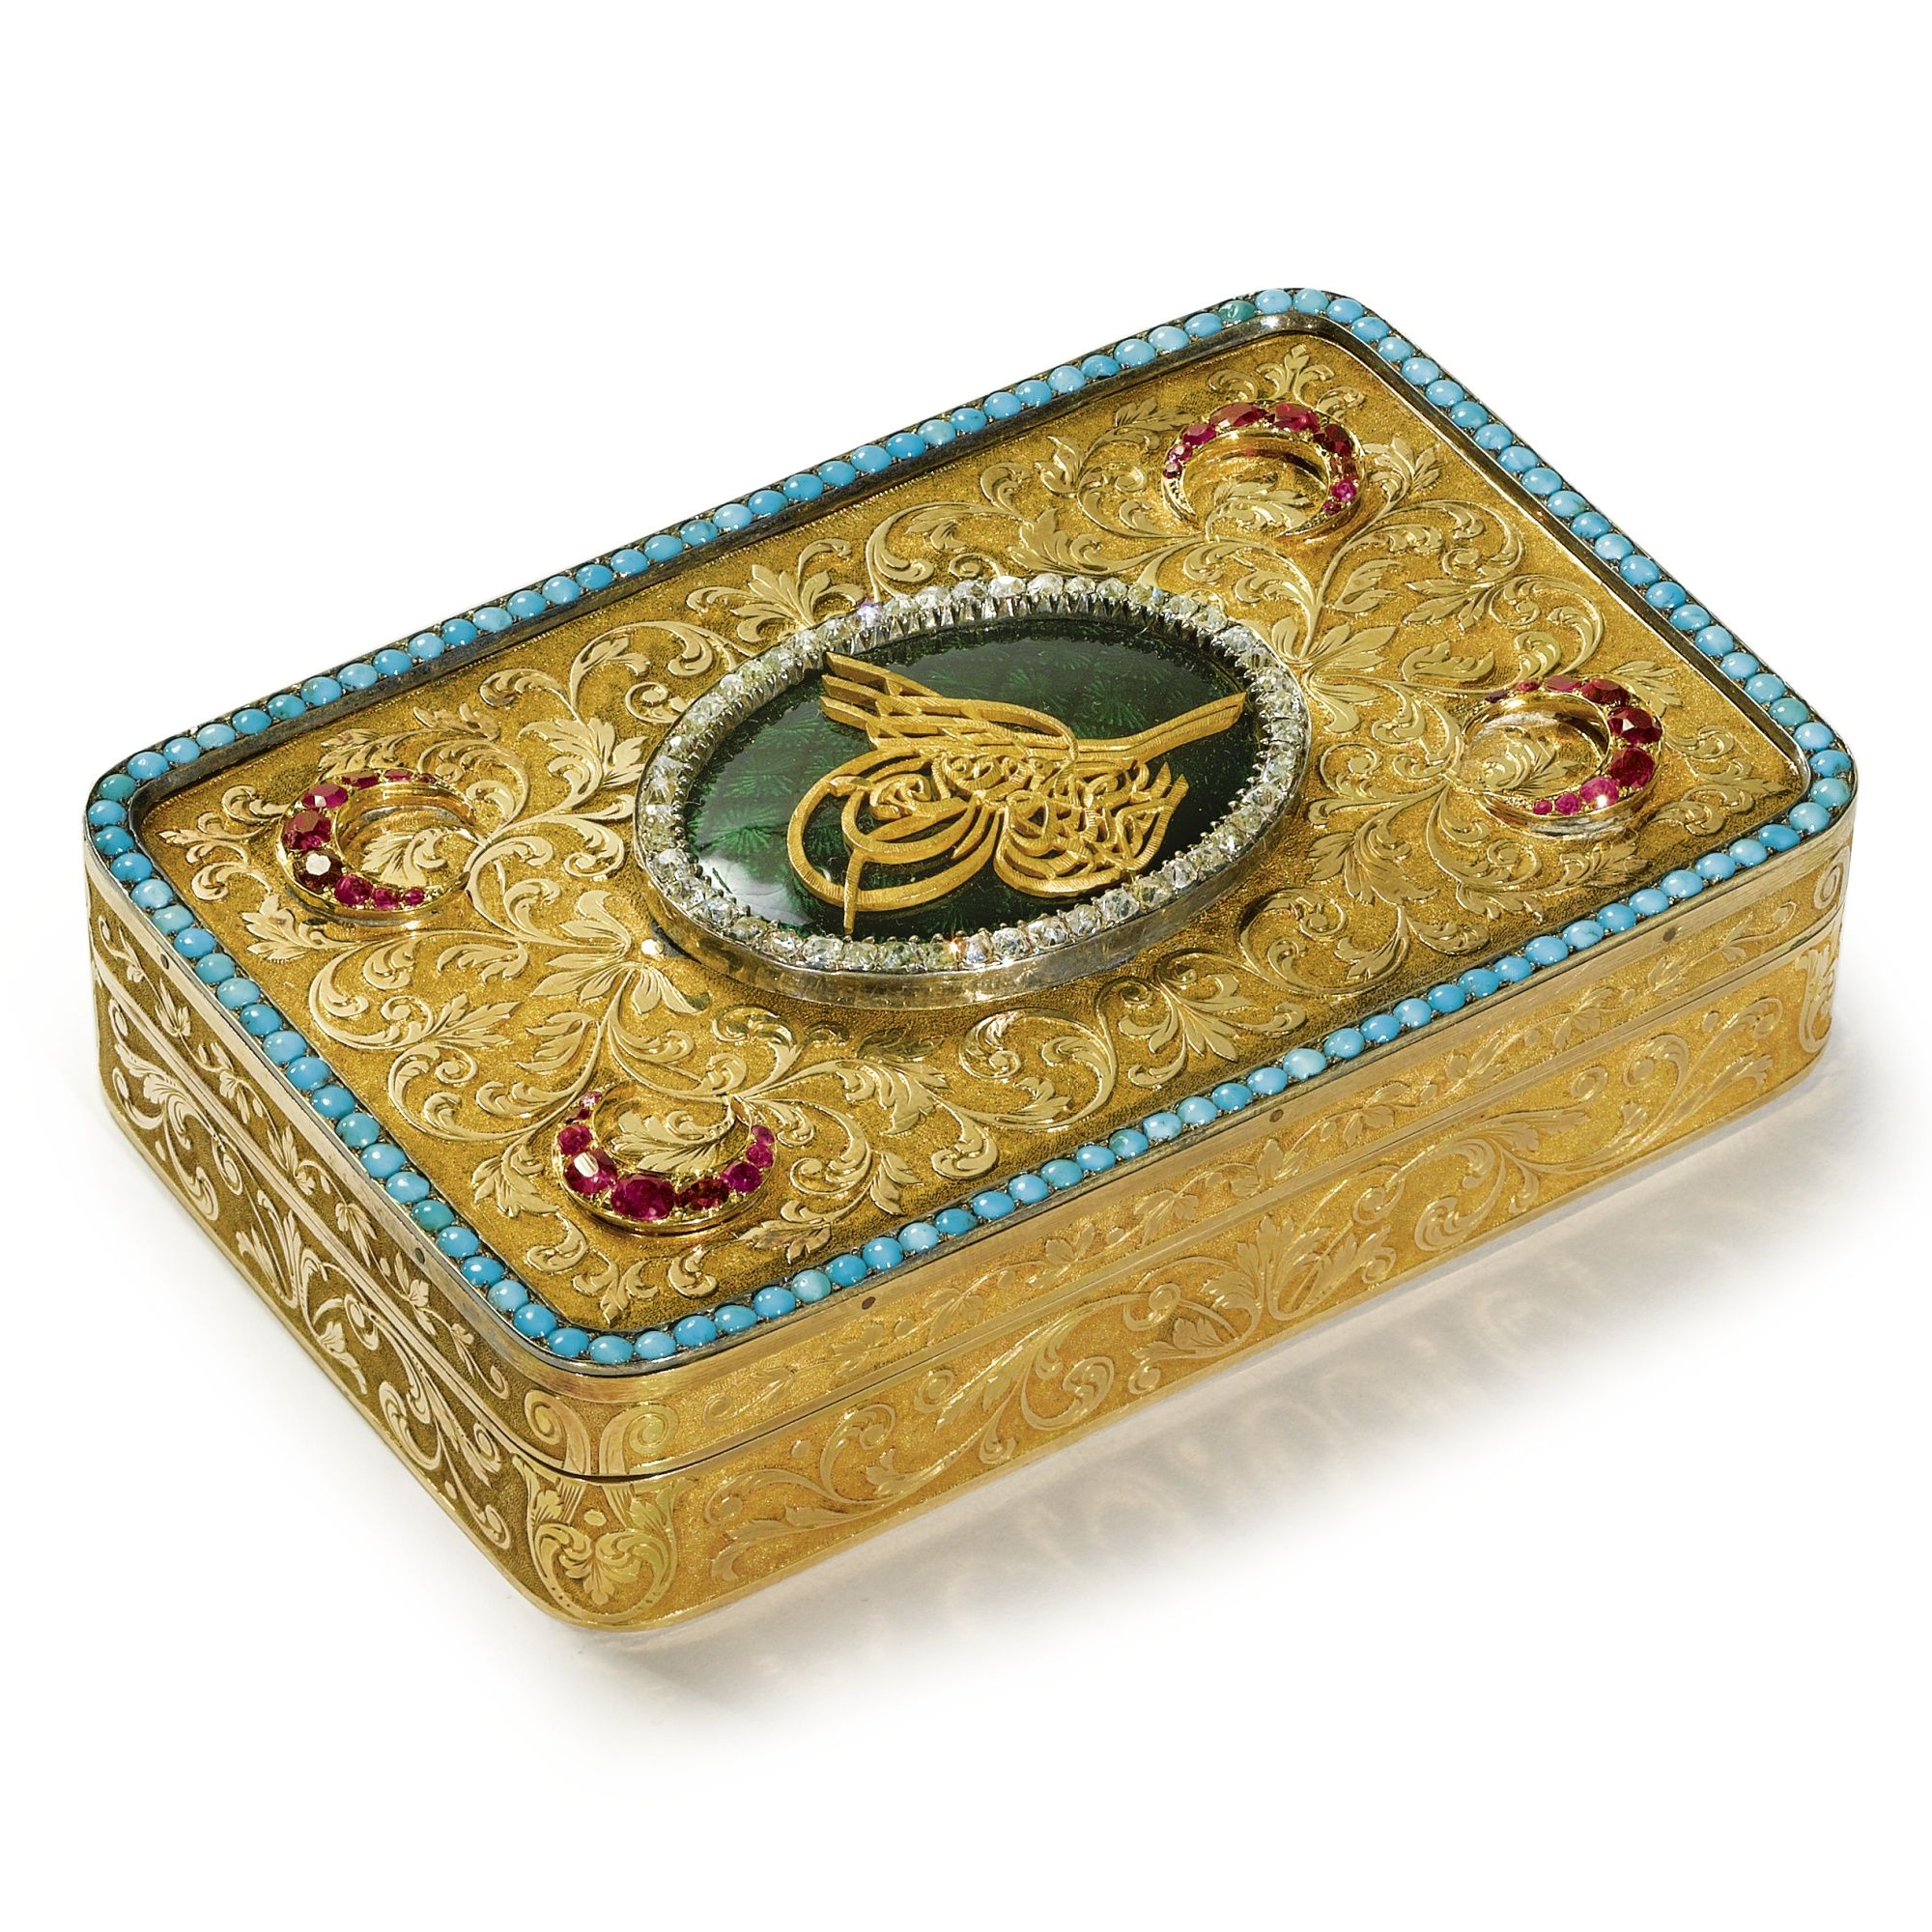 A Swiss gold and gem-set large snuffbox for the Turkish market, 19th century | lot | Sotheby's